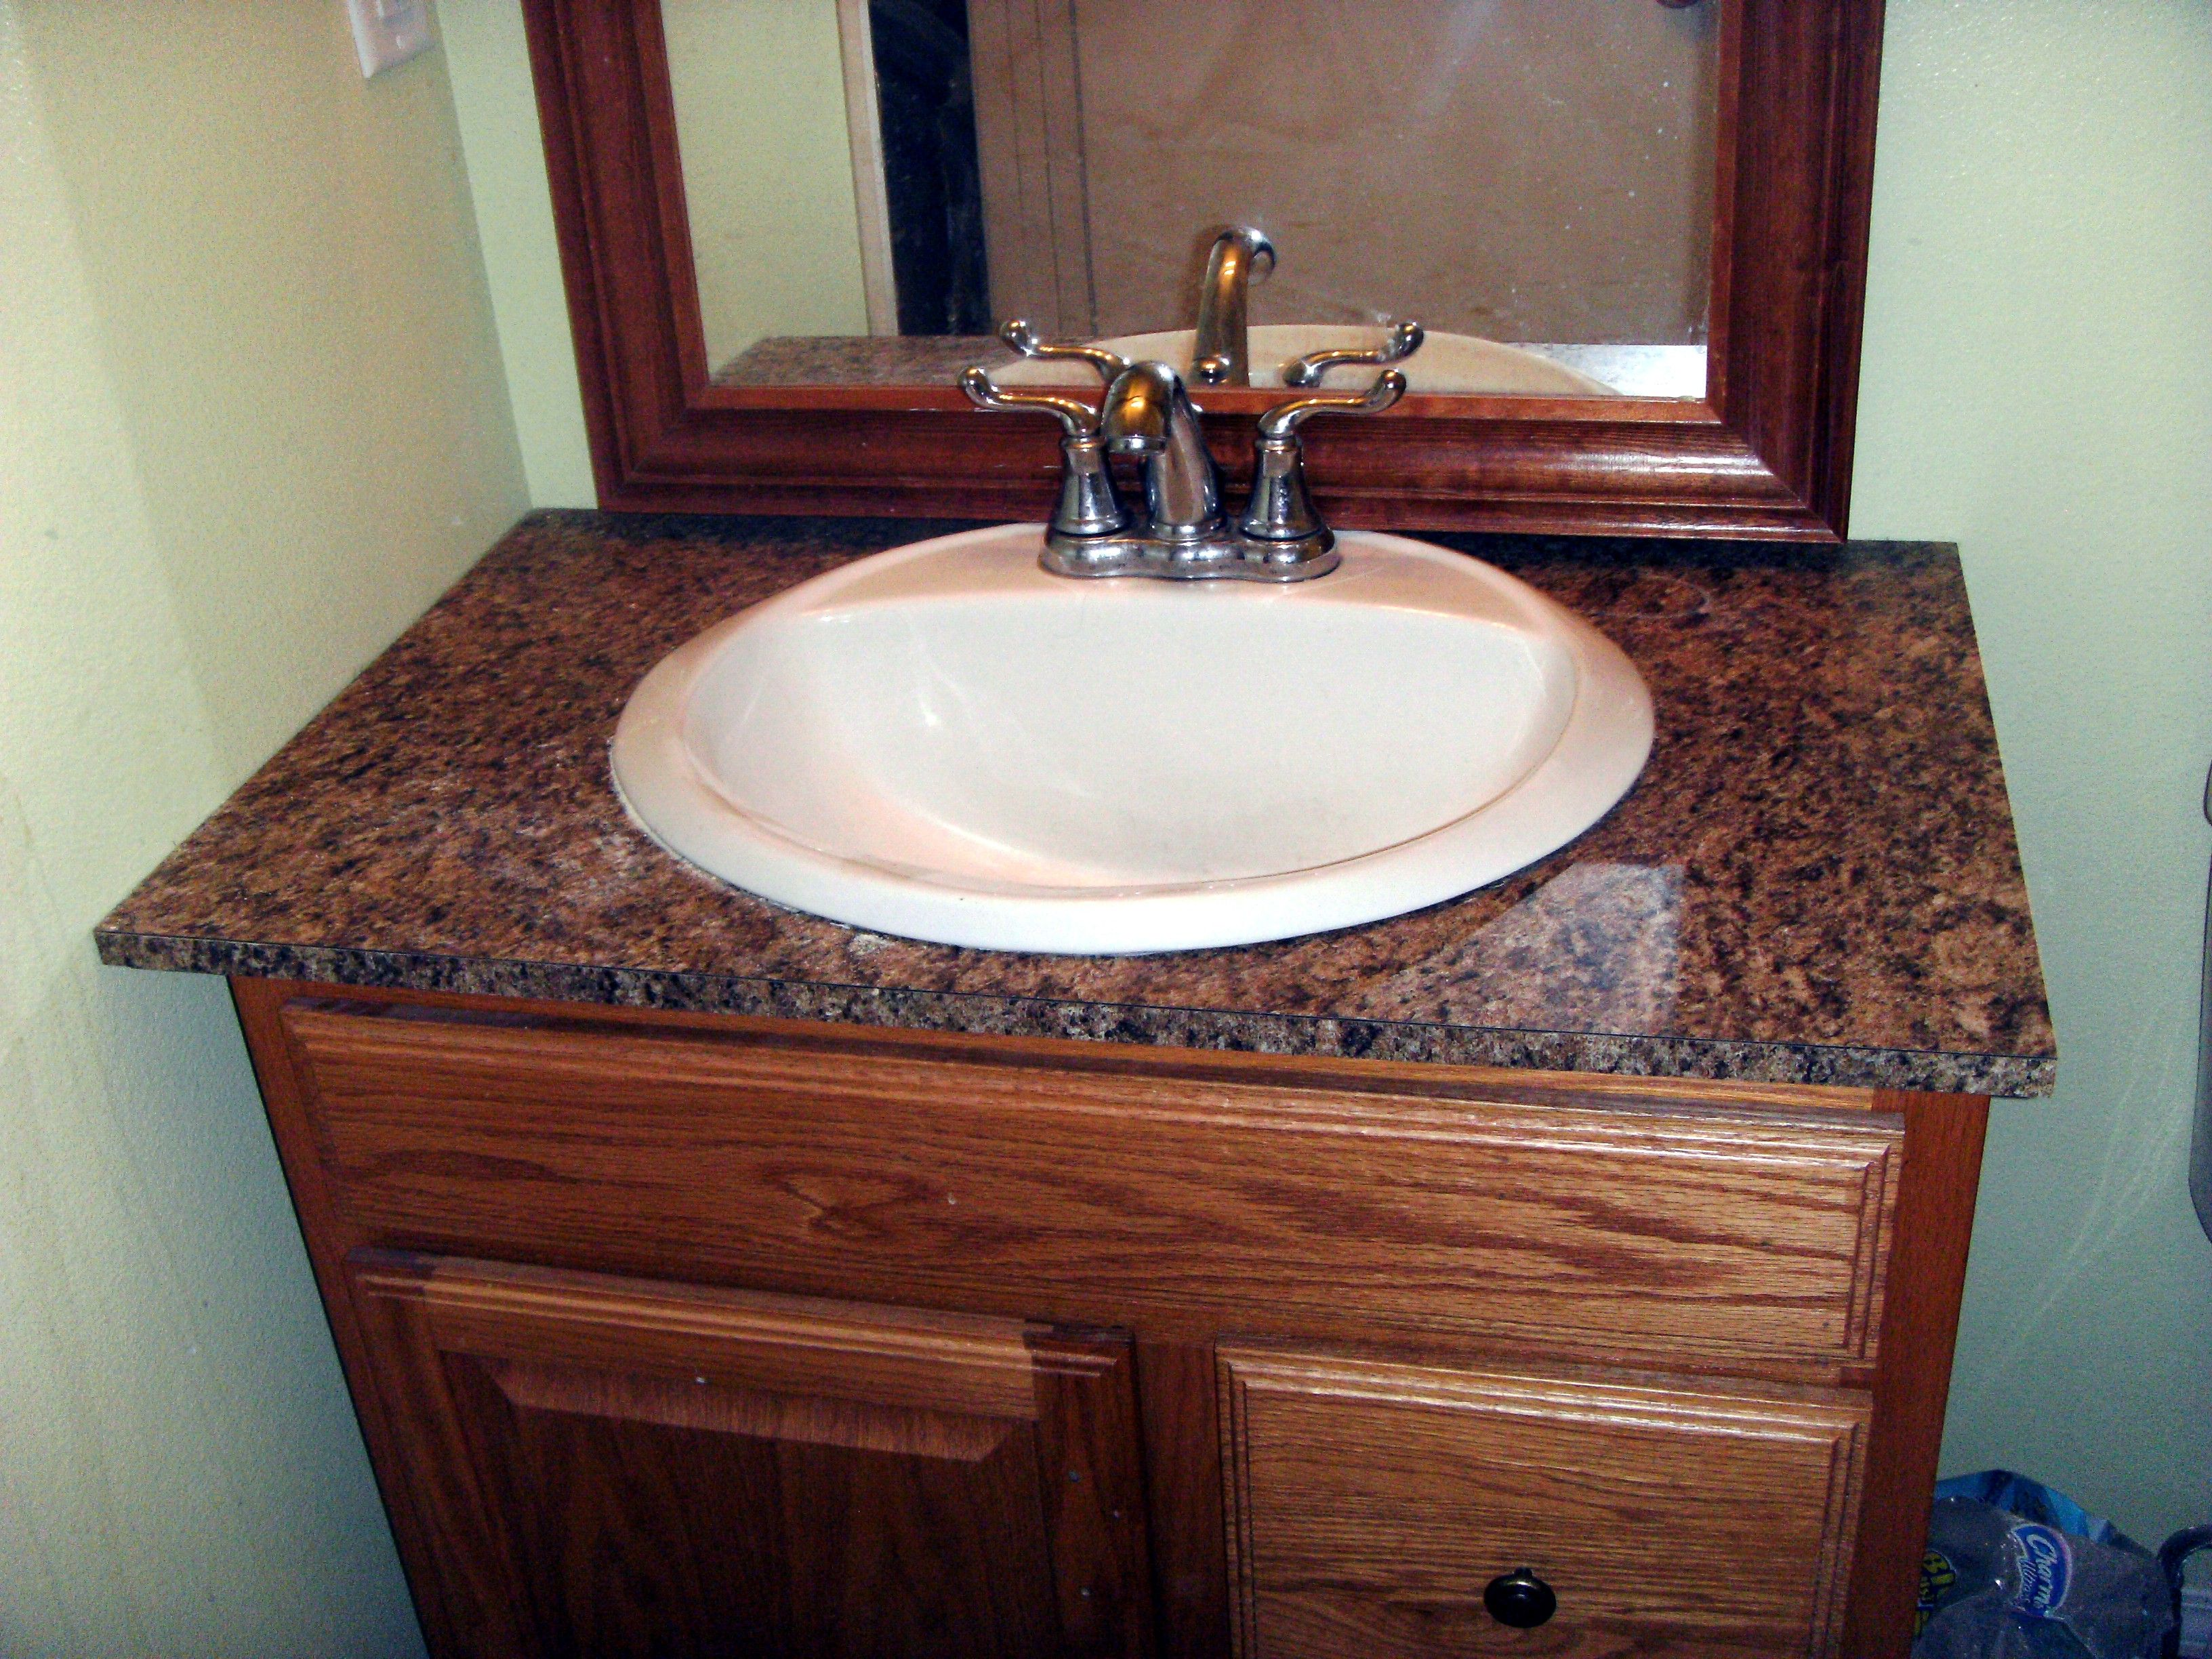 How To Install Laminate Formica For A Bathroom Vanity Countertop Bathroom Redo By Tanaya